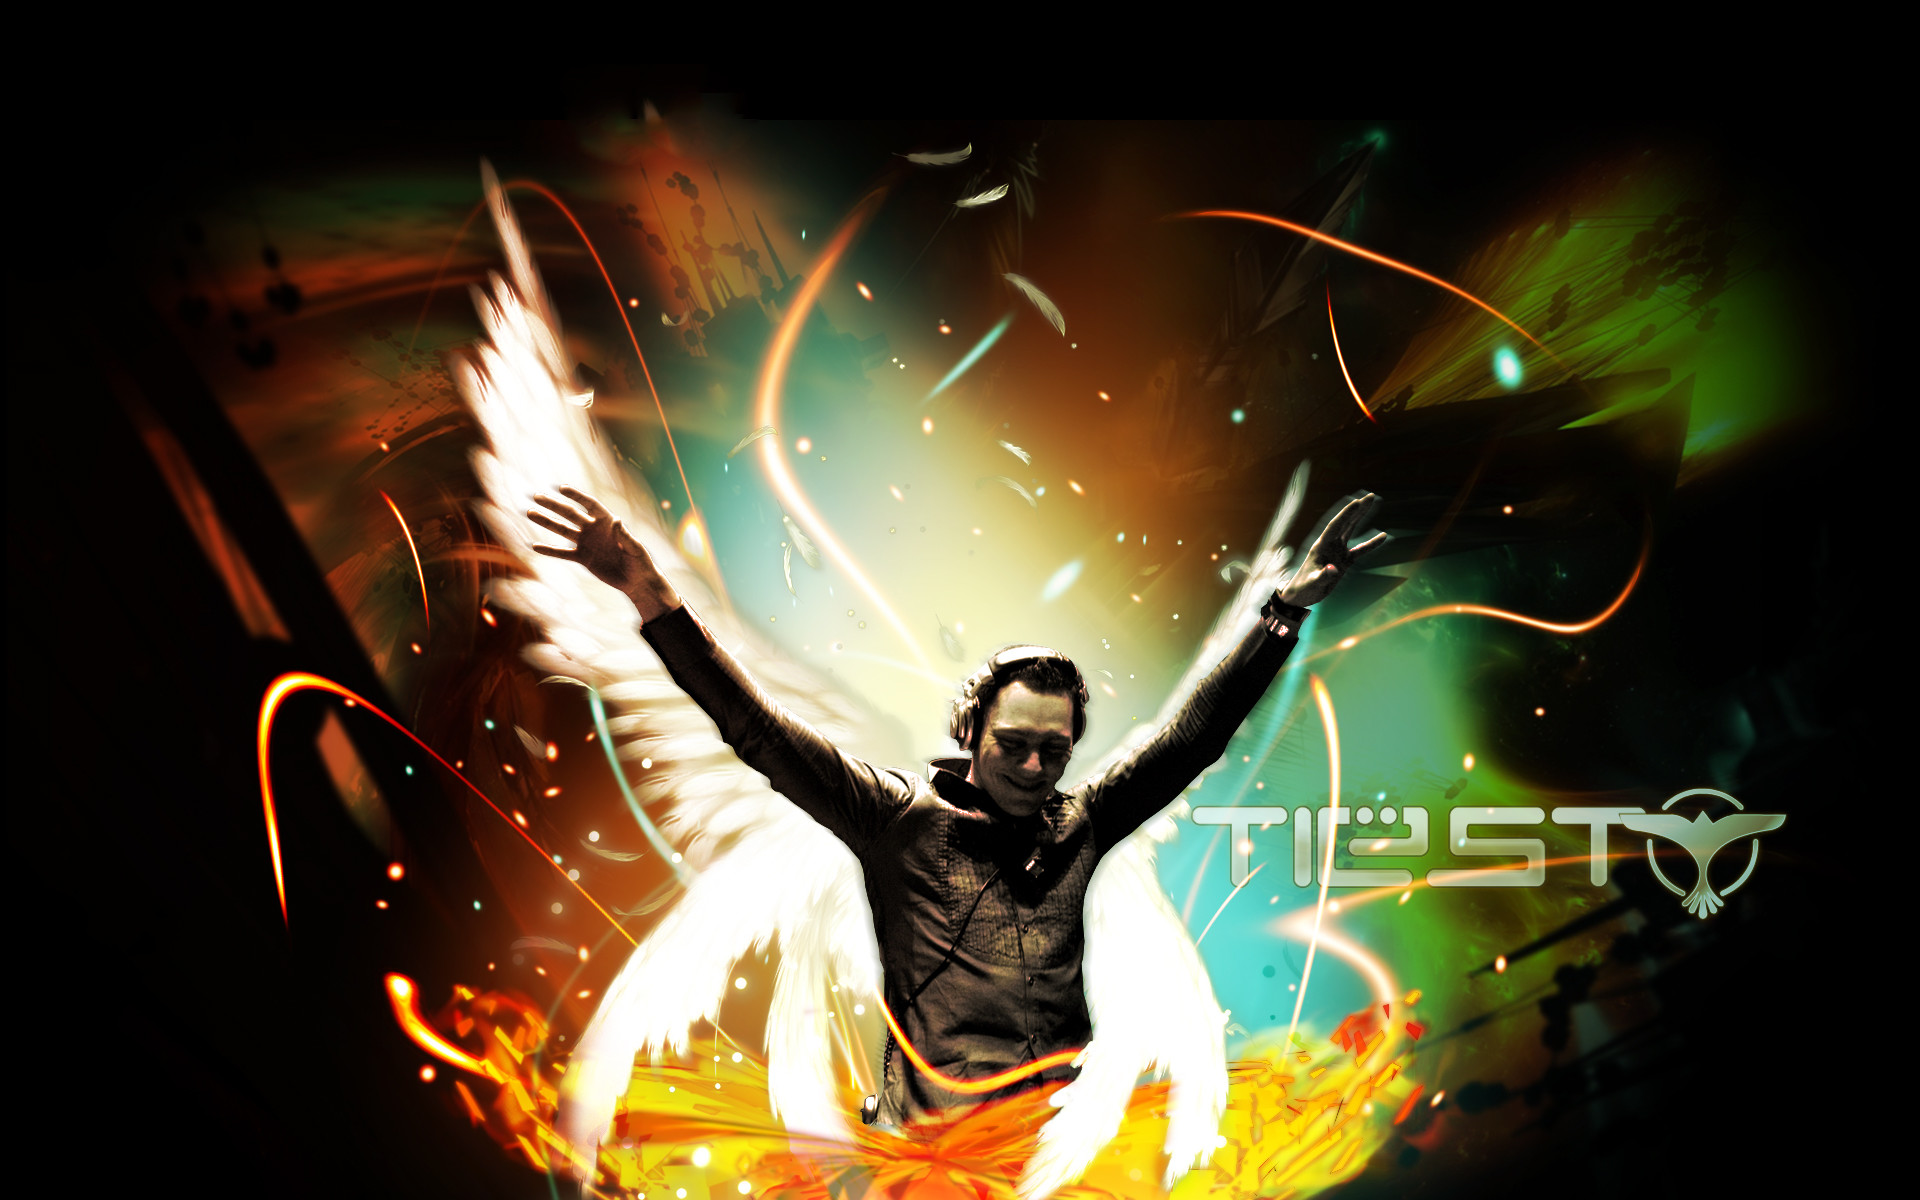 Dj Tiesto Wallpapers | Dj Tiesto Full HD Quality Wallpapers